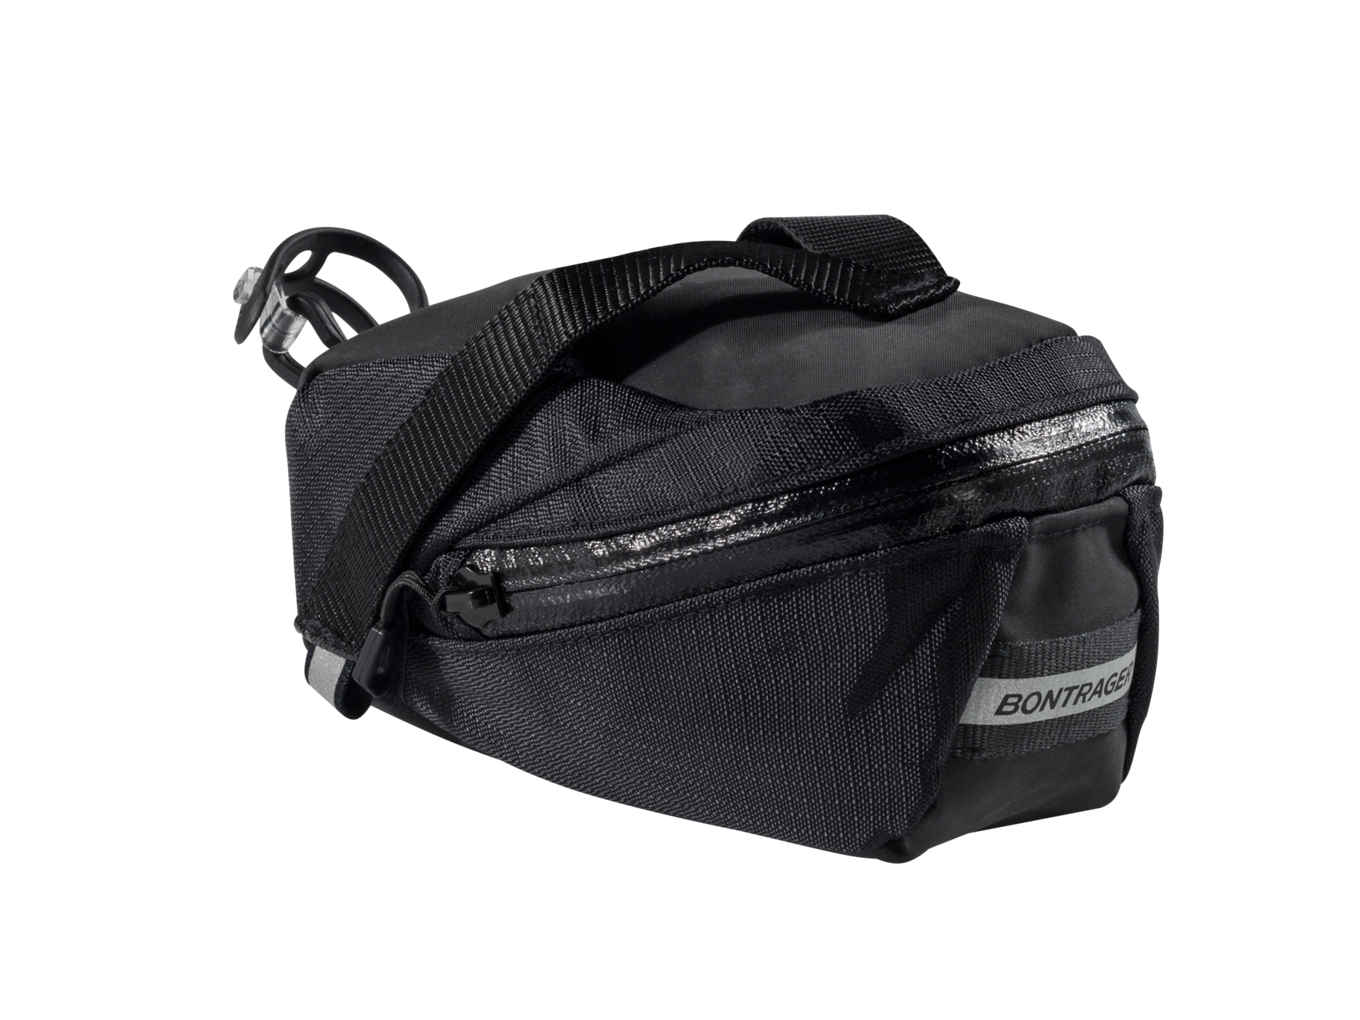 14410_A_1_Bontrager_Elite_Medium_Seat_Pack.jpg